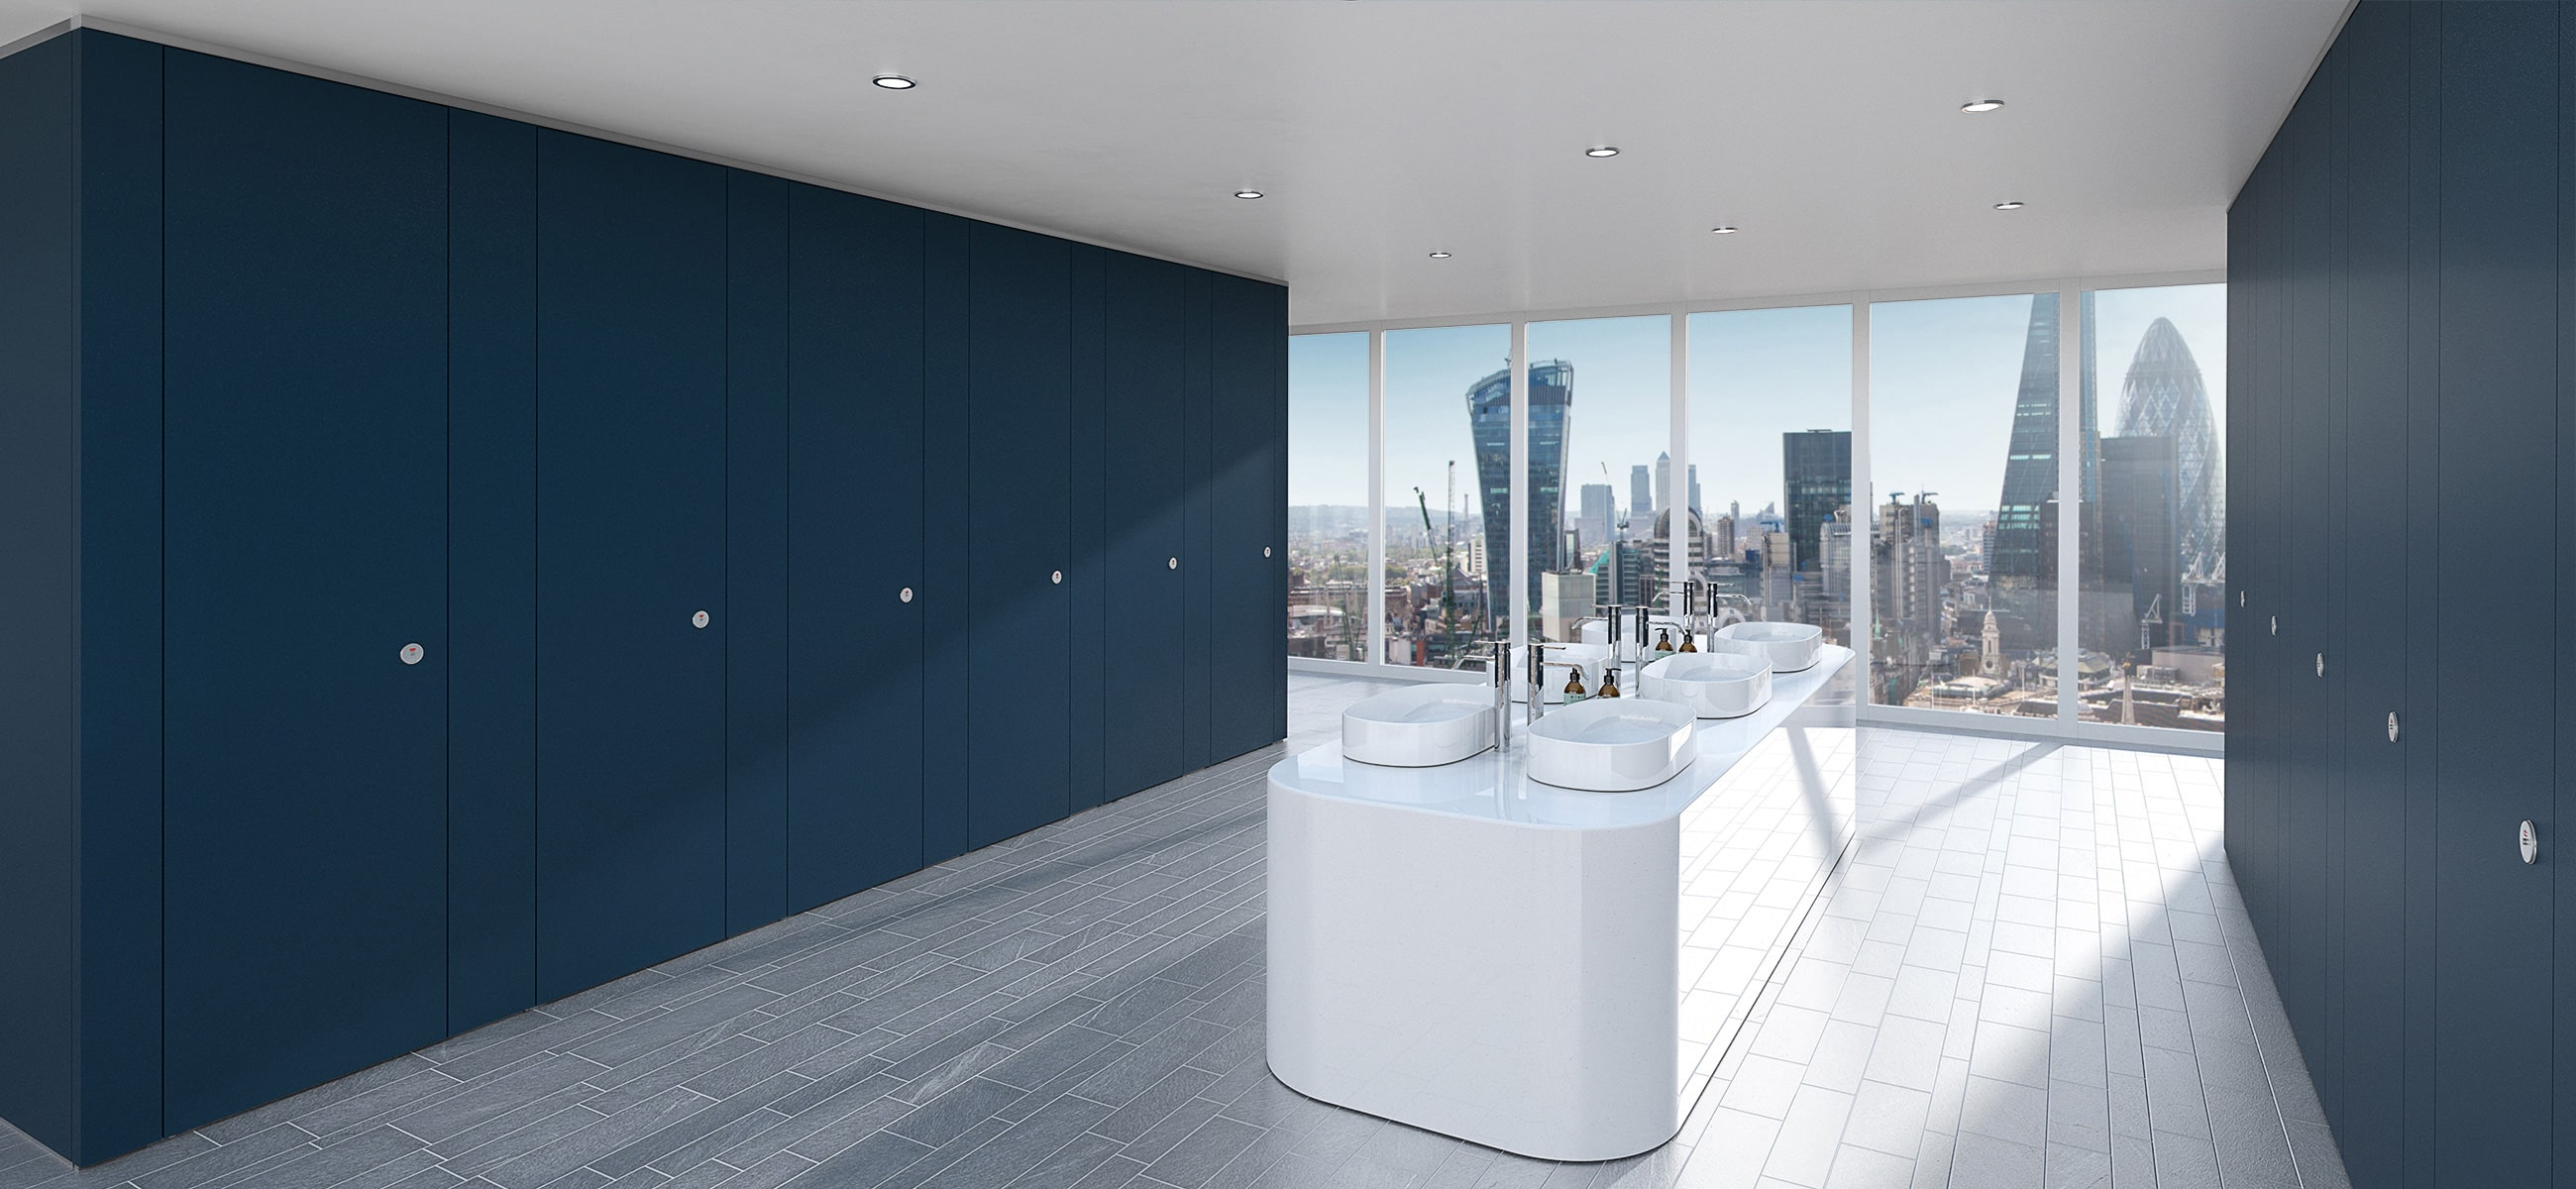 Sylan Commercial Washroom Cubicles in Blue ColourCoat